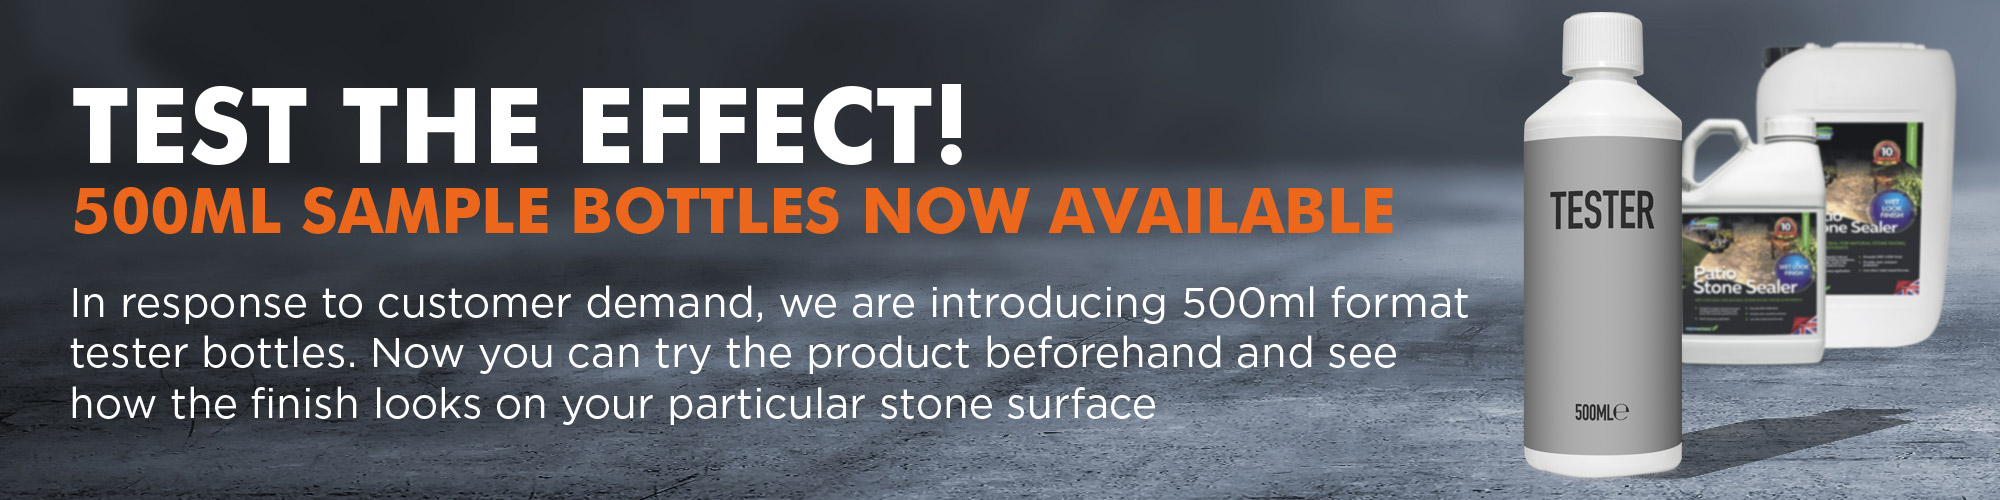 Test it out: Patio Stone Sealer Wet Look now available in 500ml tester bottle